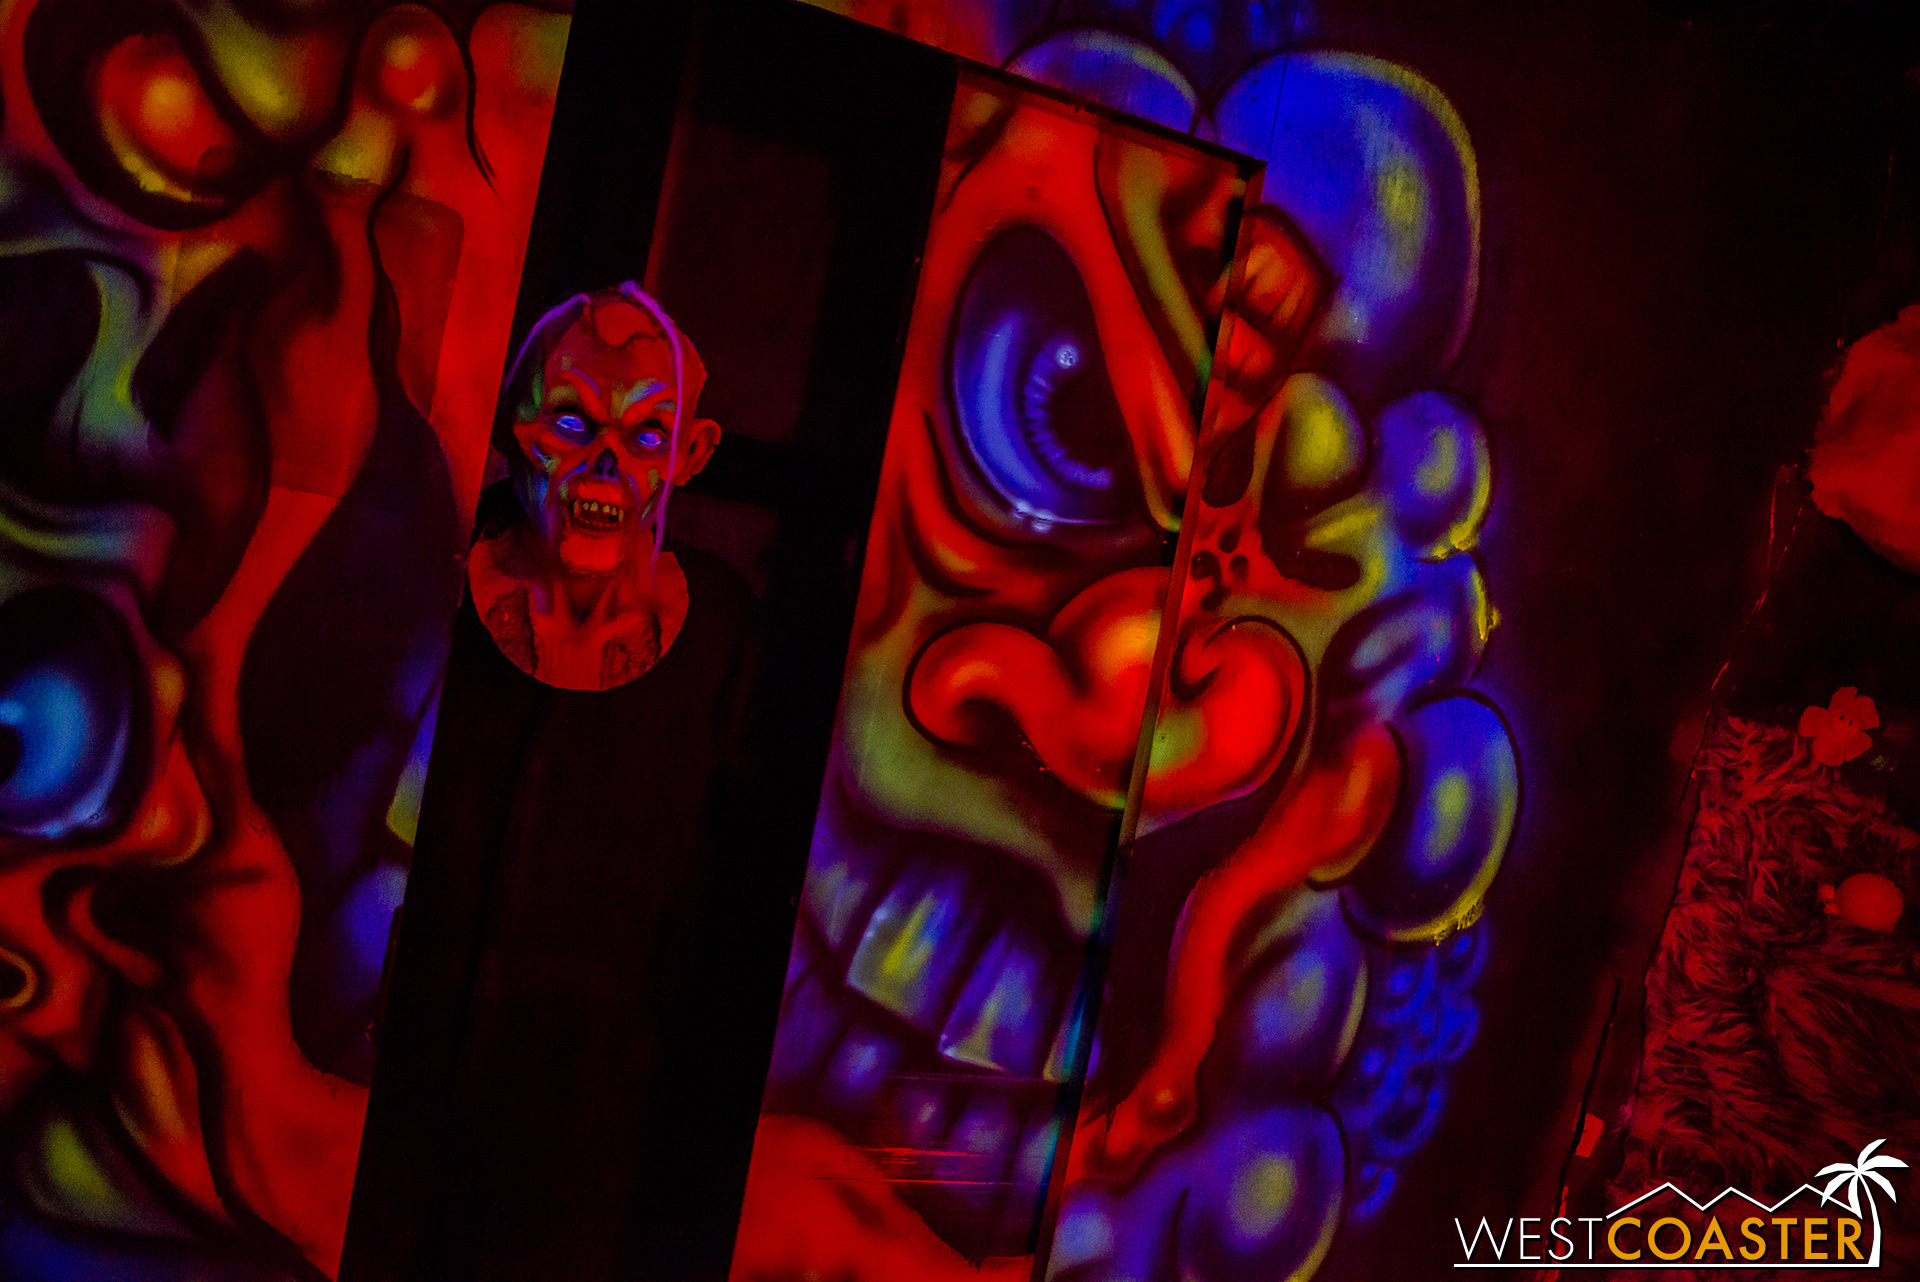 The 3D effect is achieved with black light painting and contrast of warm and cool colors to create depth.